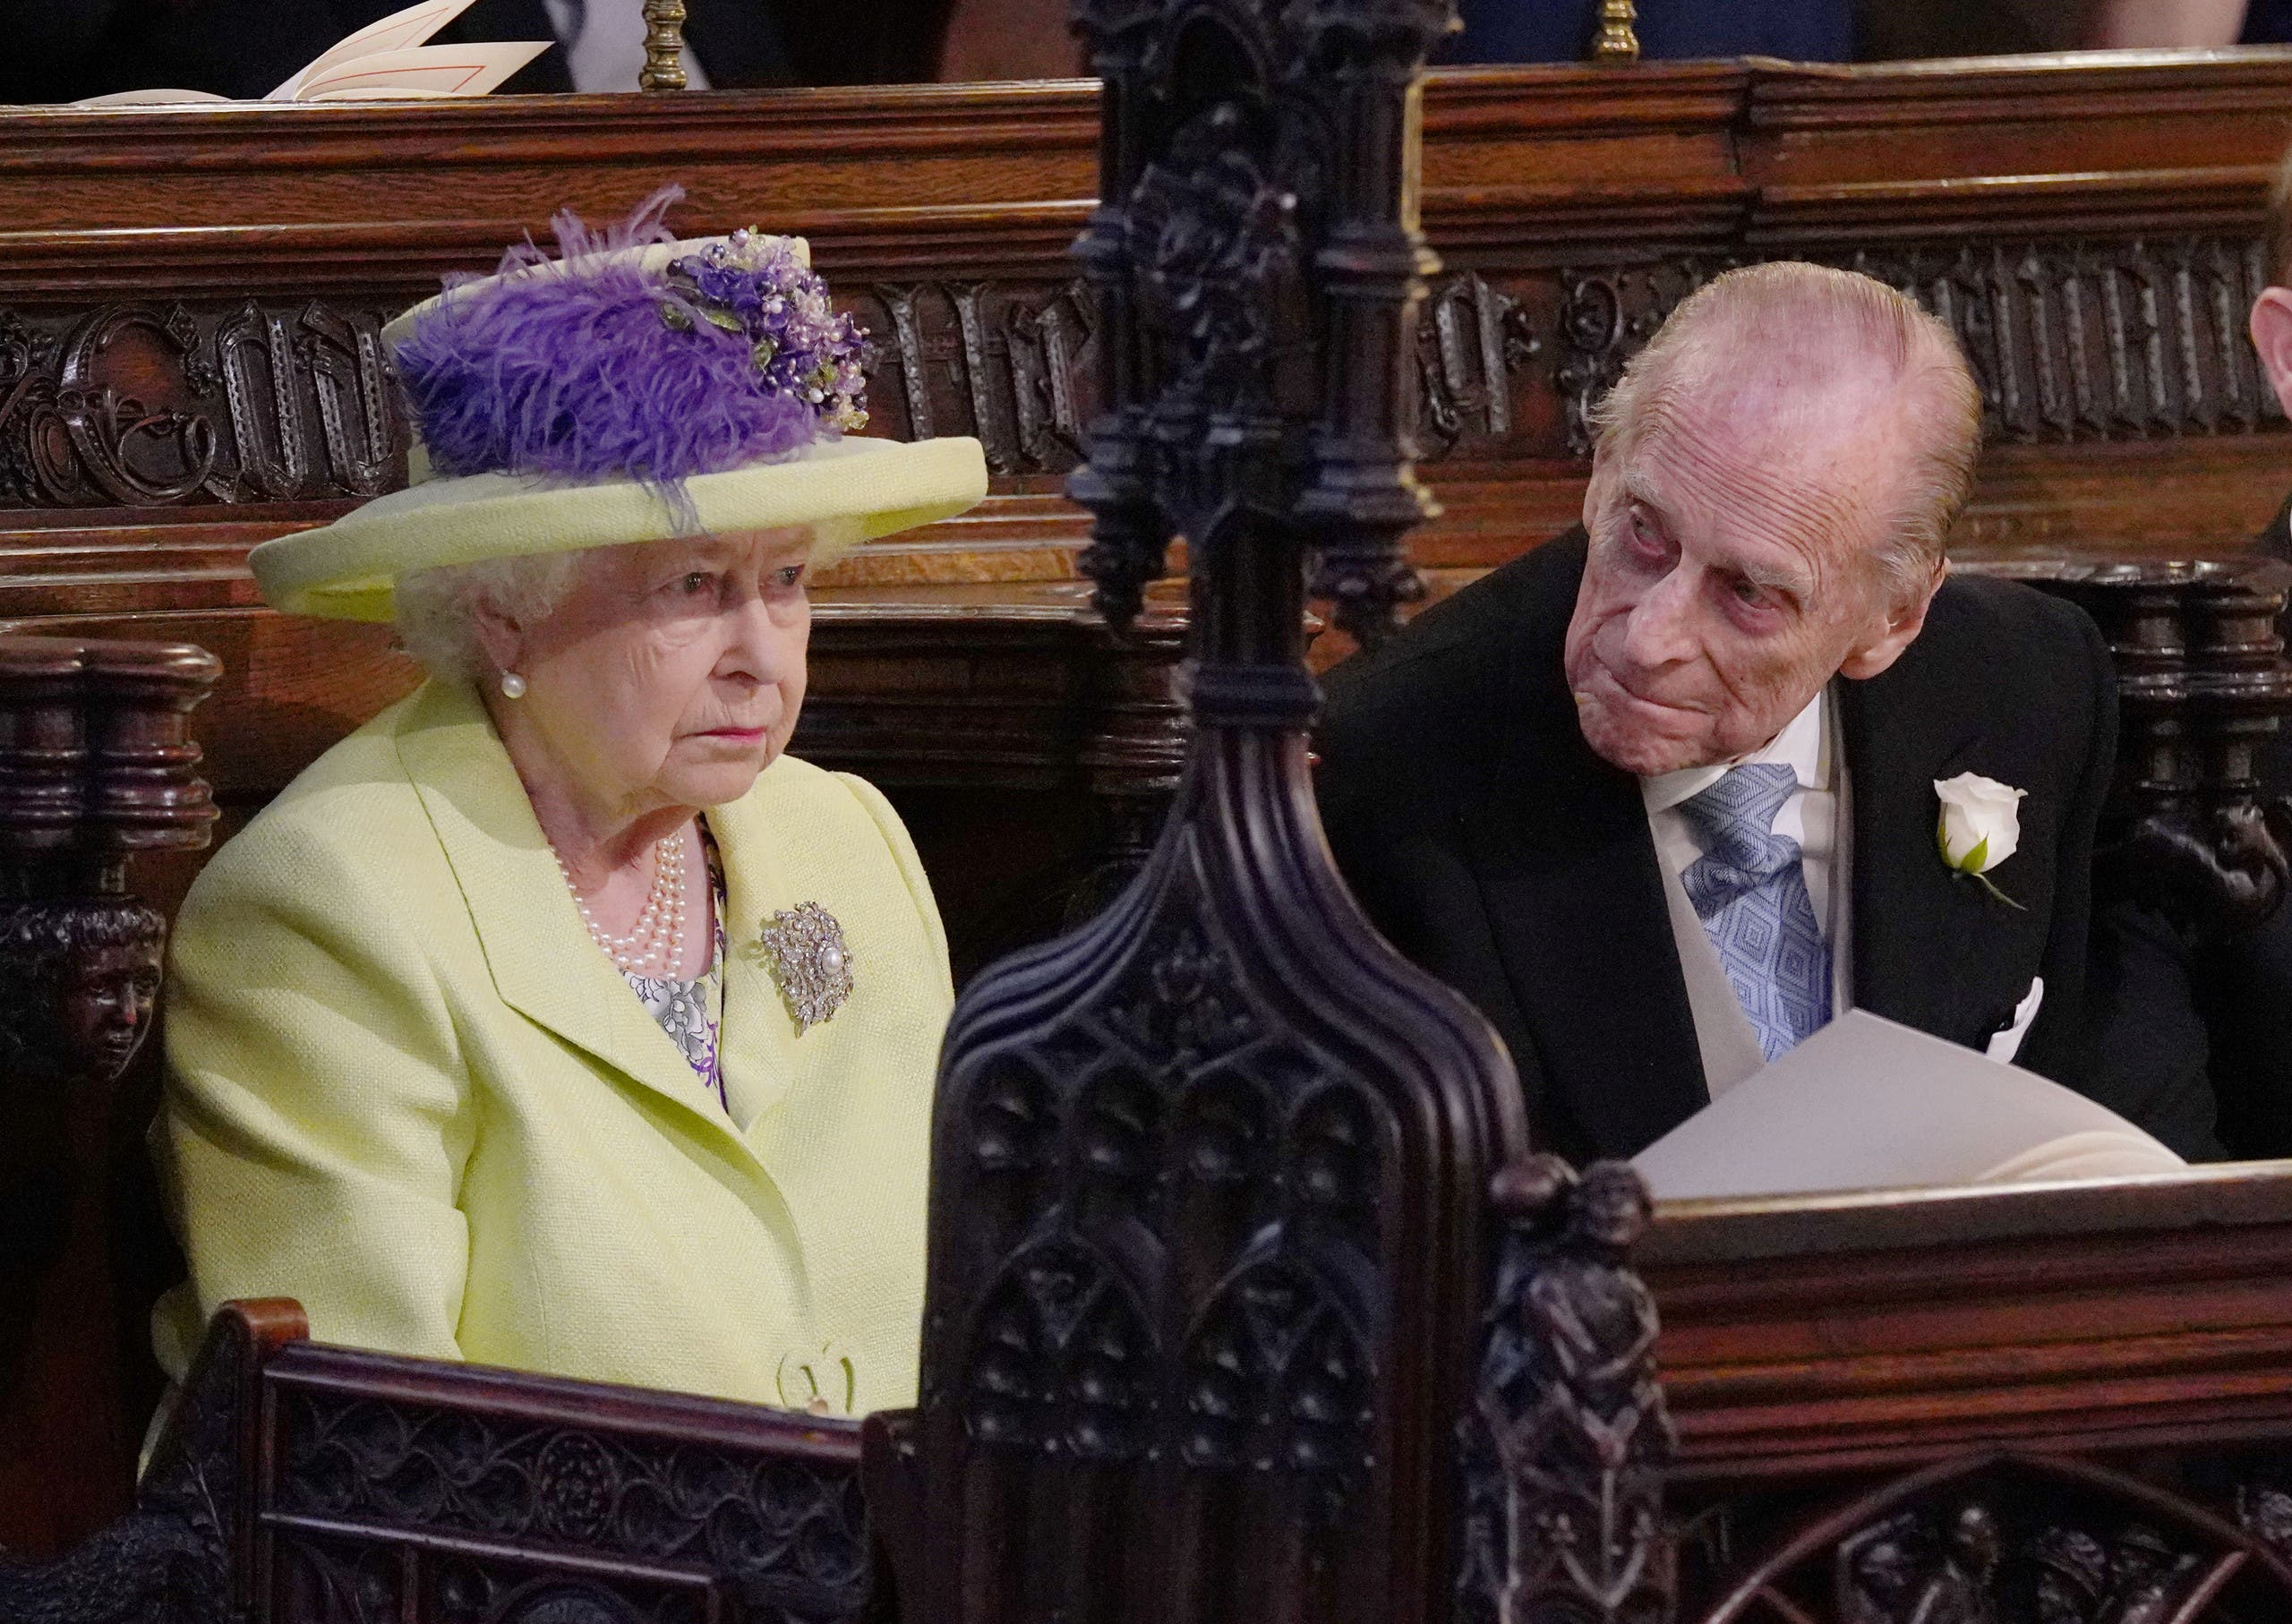 Queen Elizabeth II and Prince Phillip during the wedding service for Prince Harry and Meghan Markle at St George's Chapel, Windsor Castle in Windsor, Britain, May 19, 2018. Jonathan Brady/Pool via REUTERS